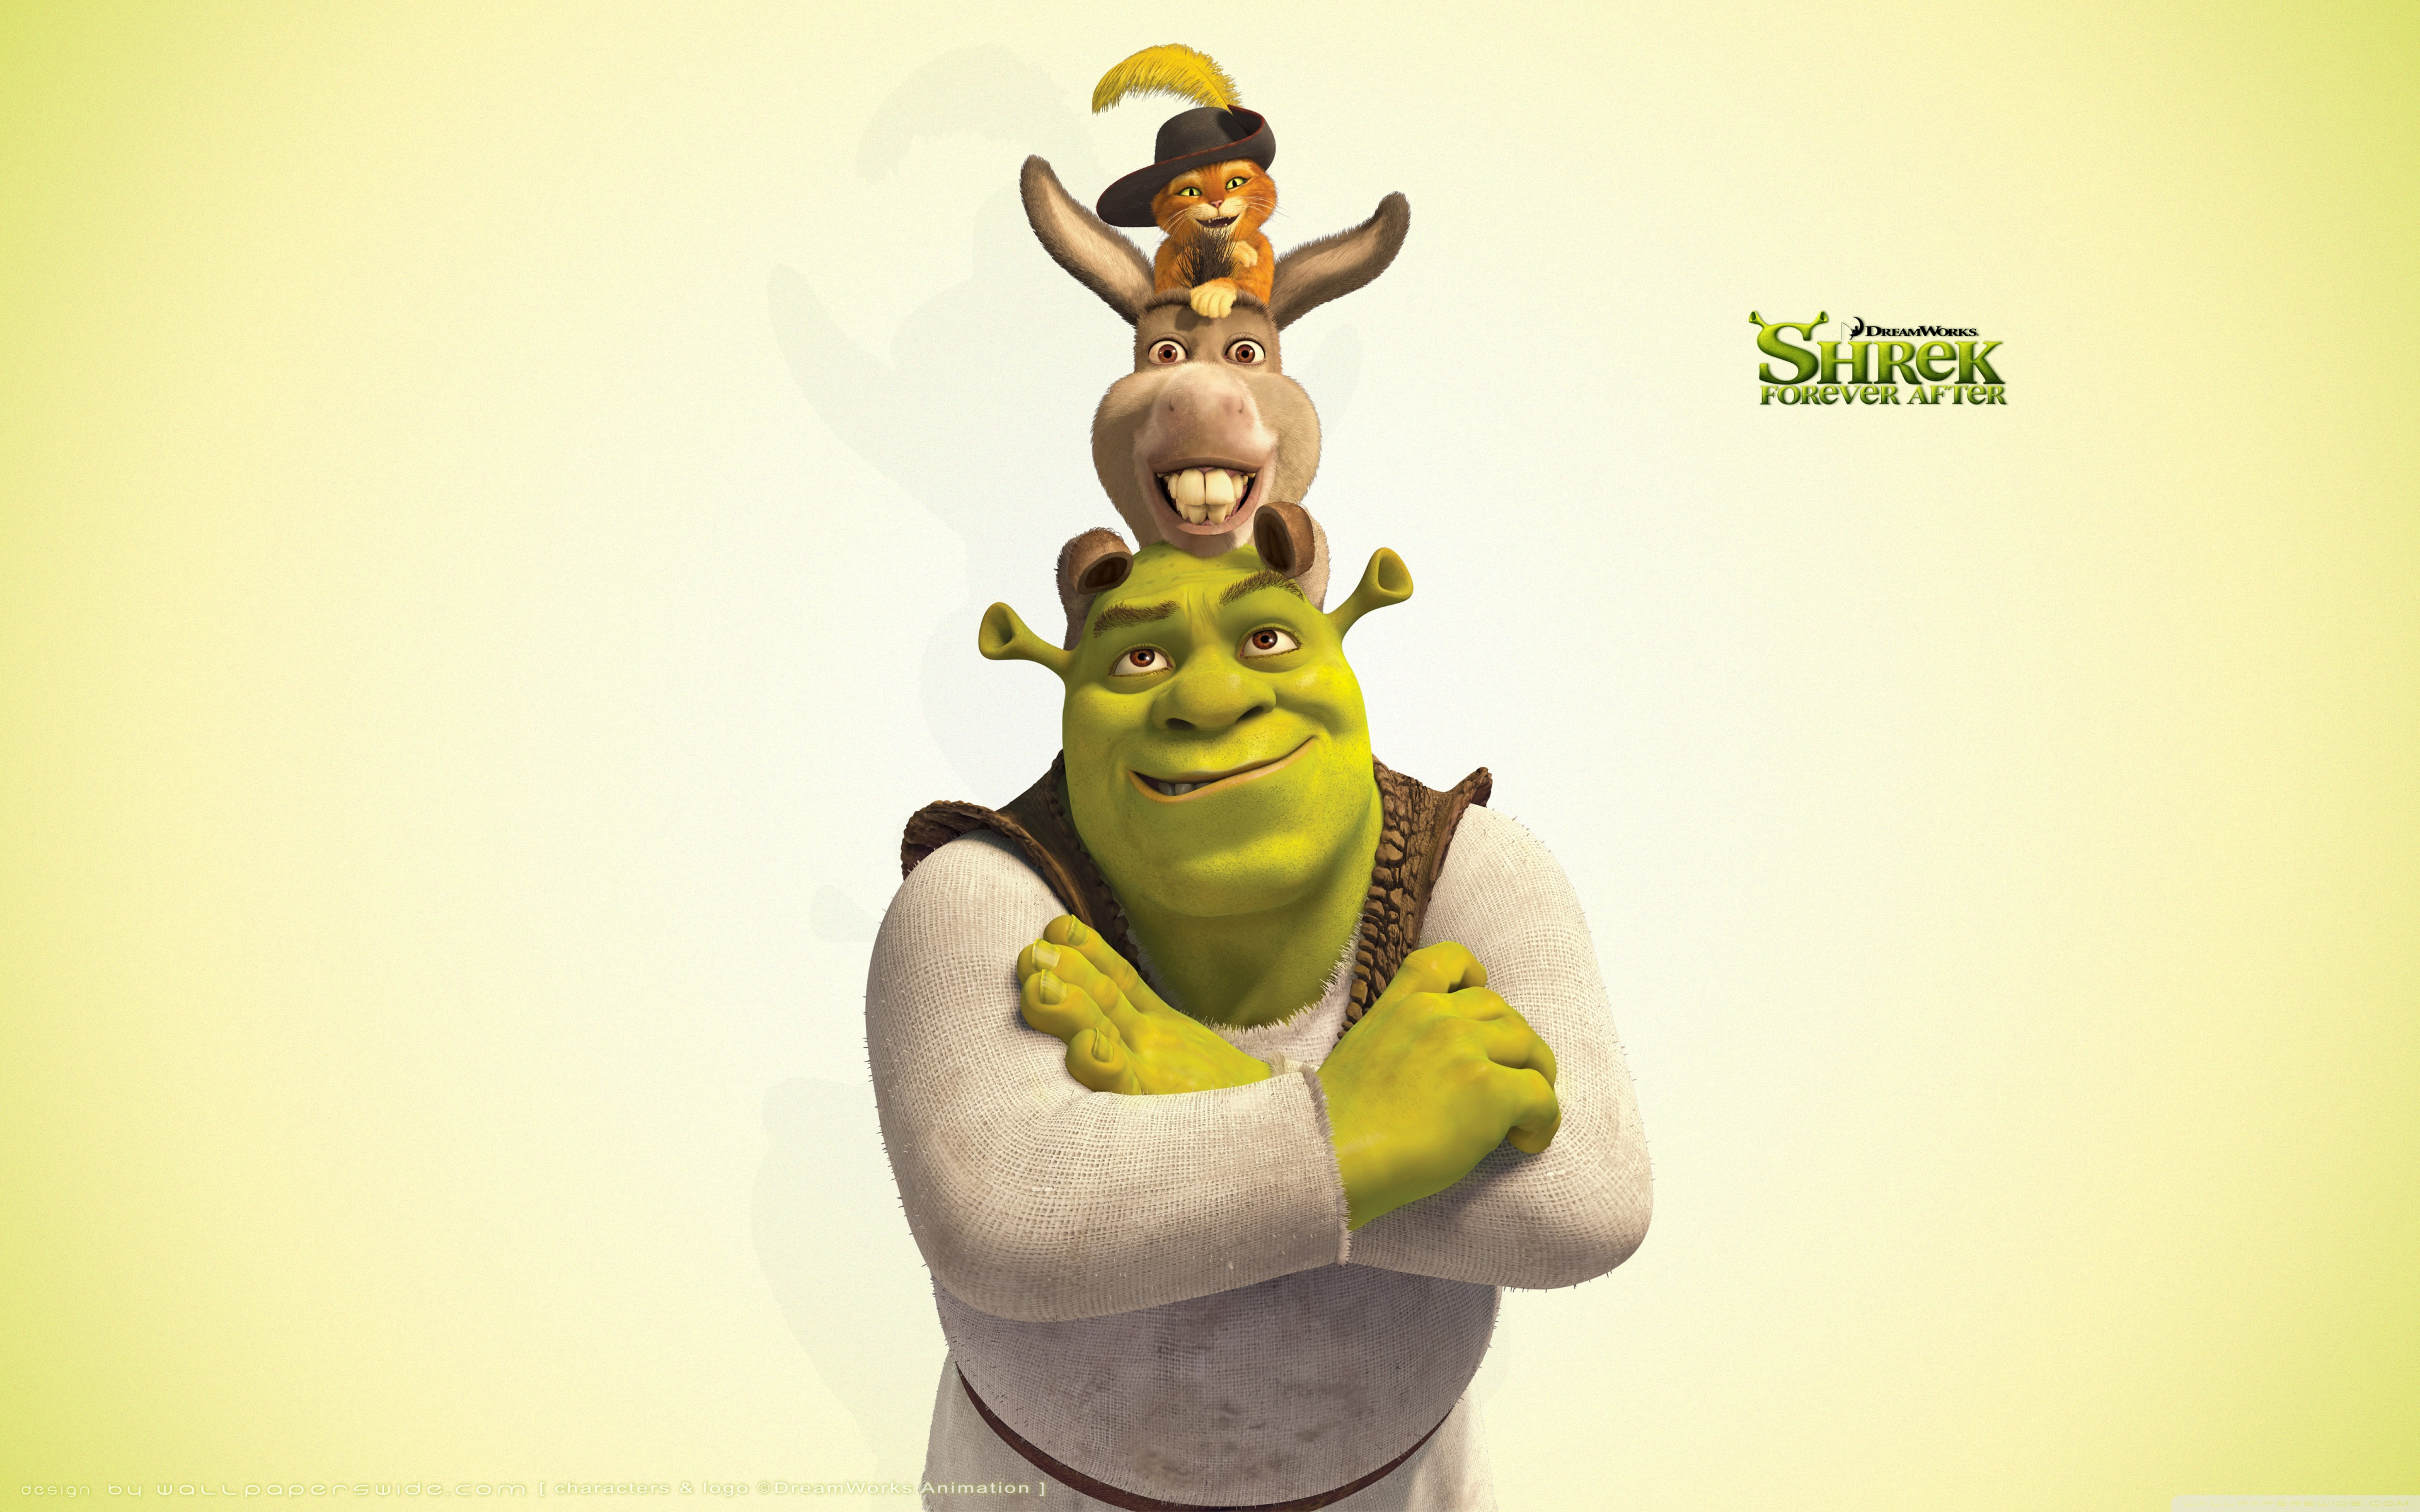 Shrek Donkey And Puss 3087679 Hd Wallpaper Backgrounds Download